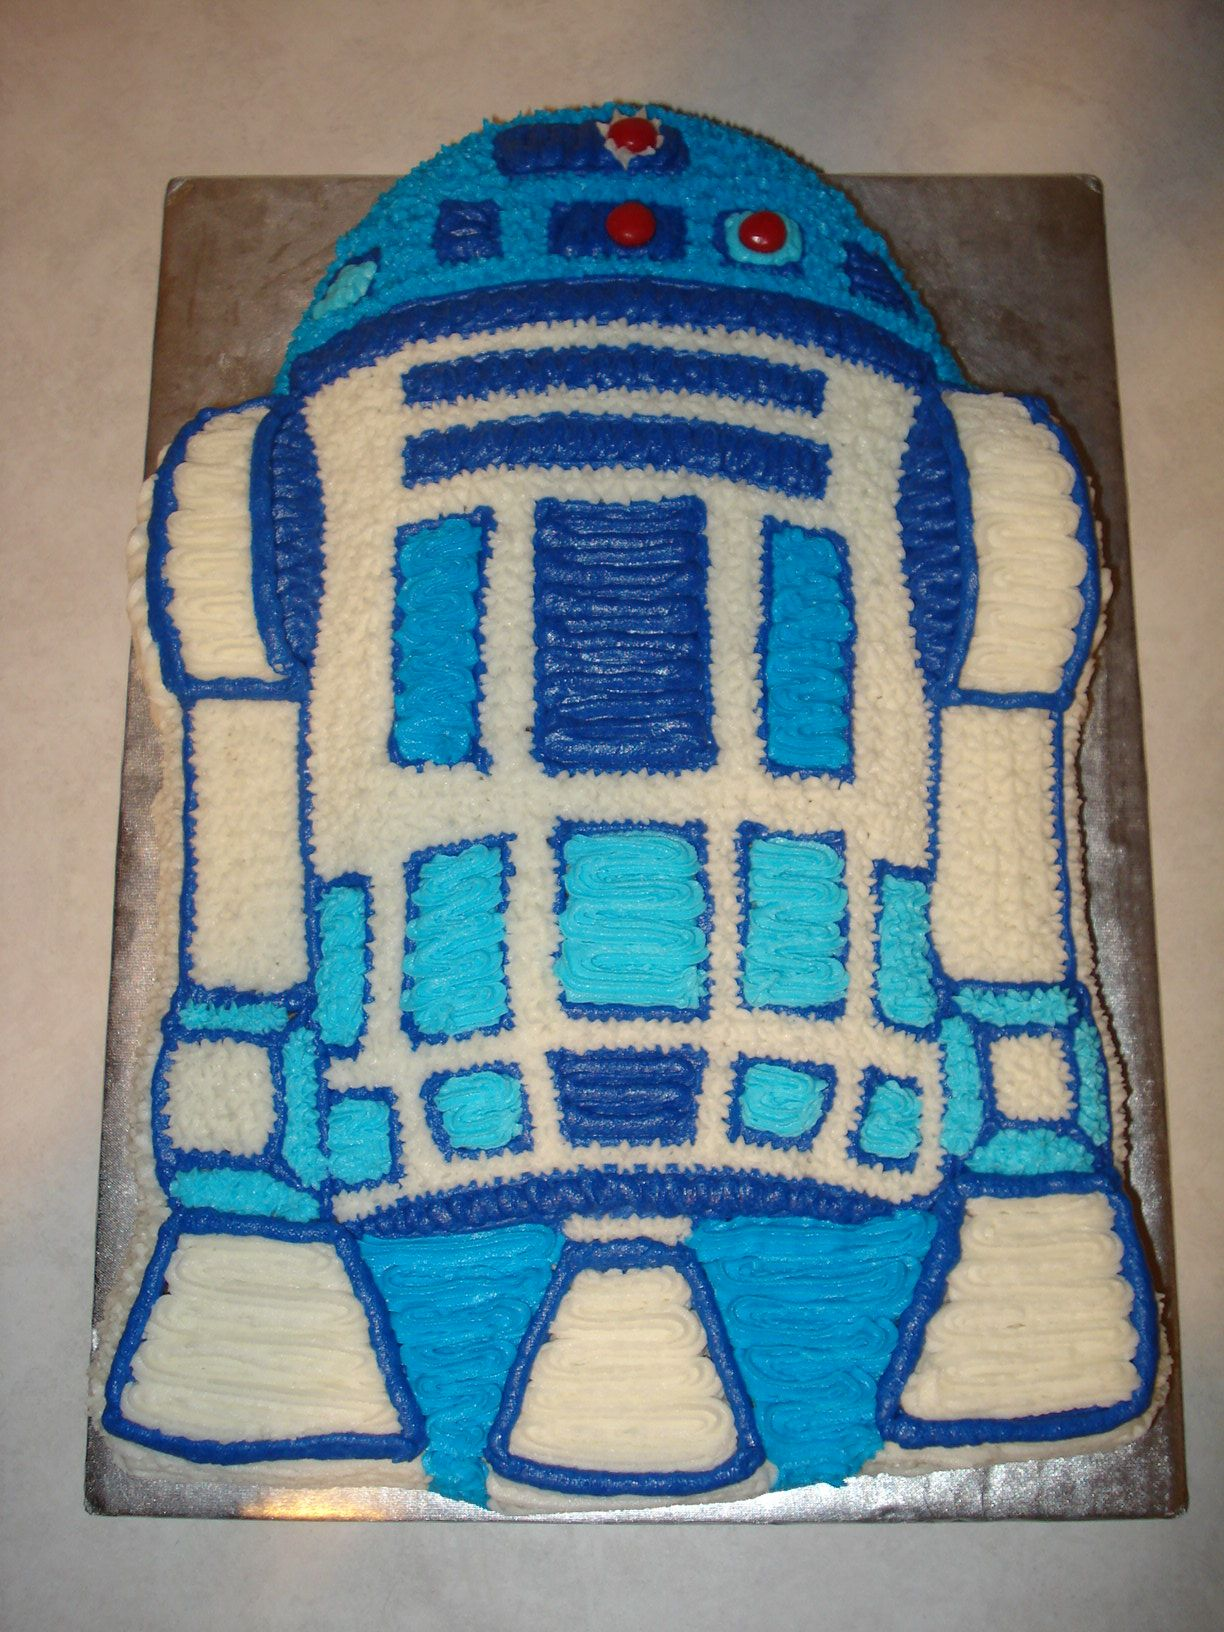 R2d2 made from wilton form pan star wars birthday